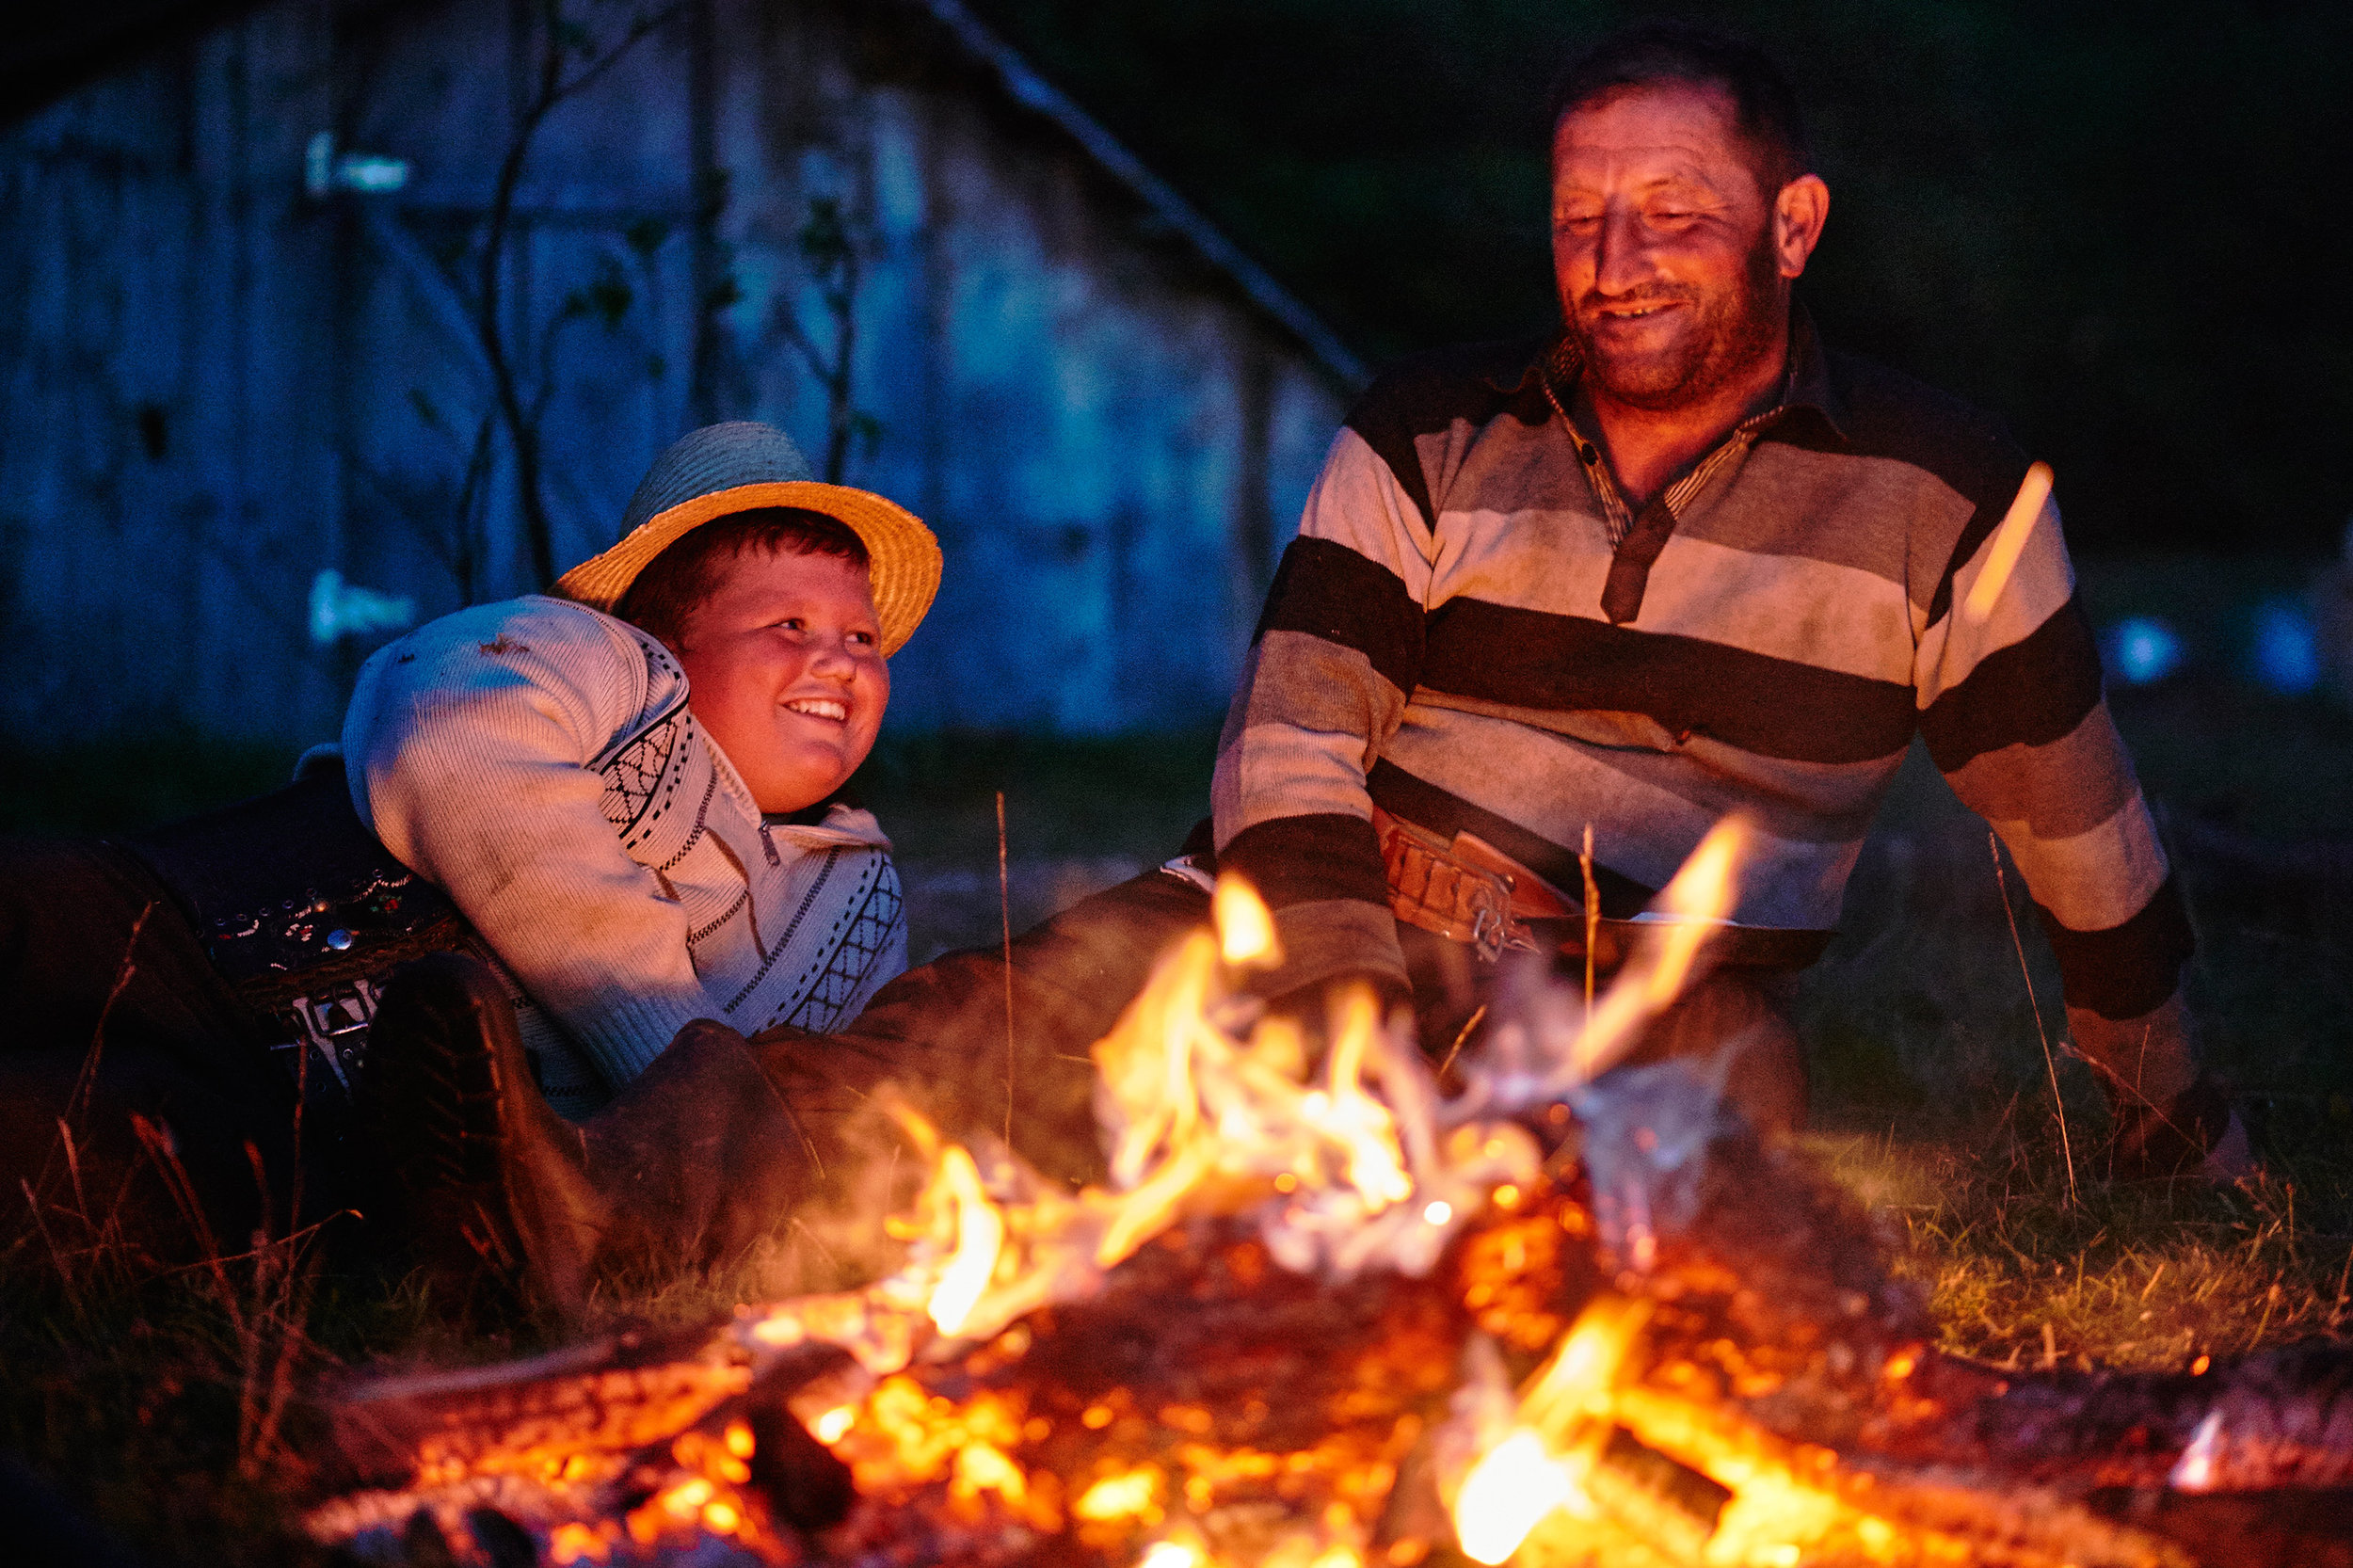 Romania-Maramures-son-and-father-by-the-fire